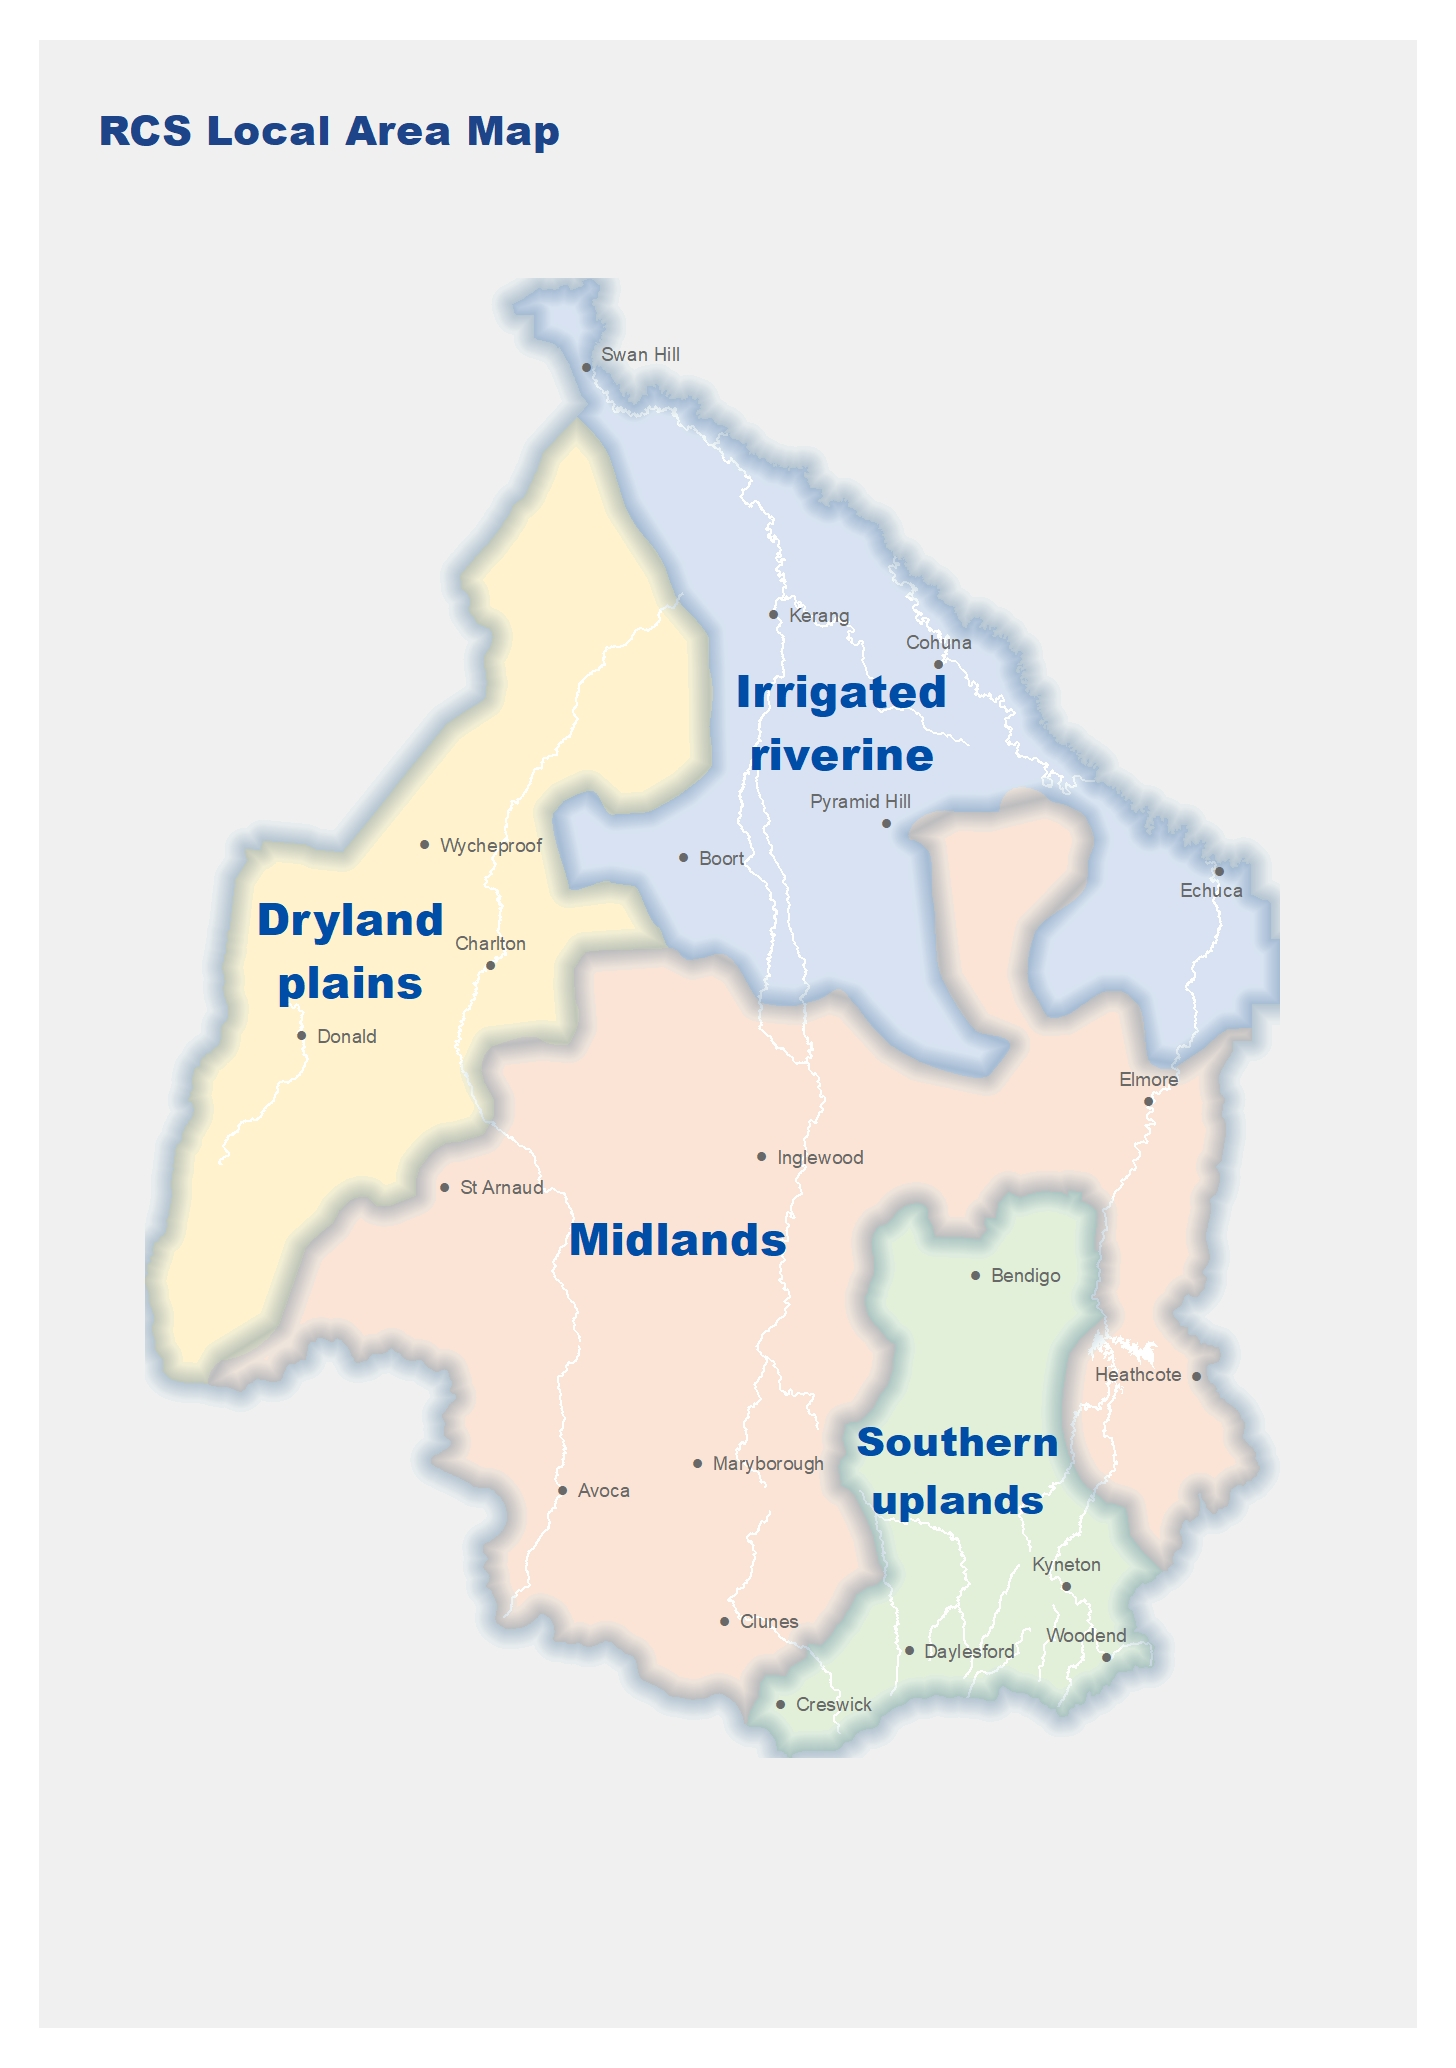 This is a map of the Regional Catchment Strategy local areas that show Irrigated riverine at the north, Midlands in the centre, Dryland plains in the north west and southern uplands in the south